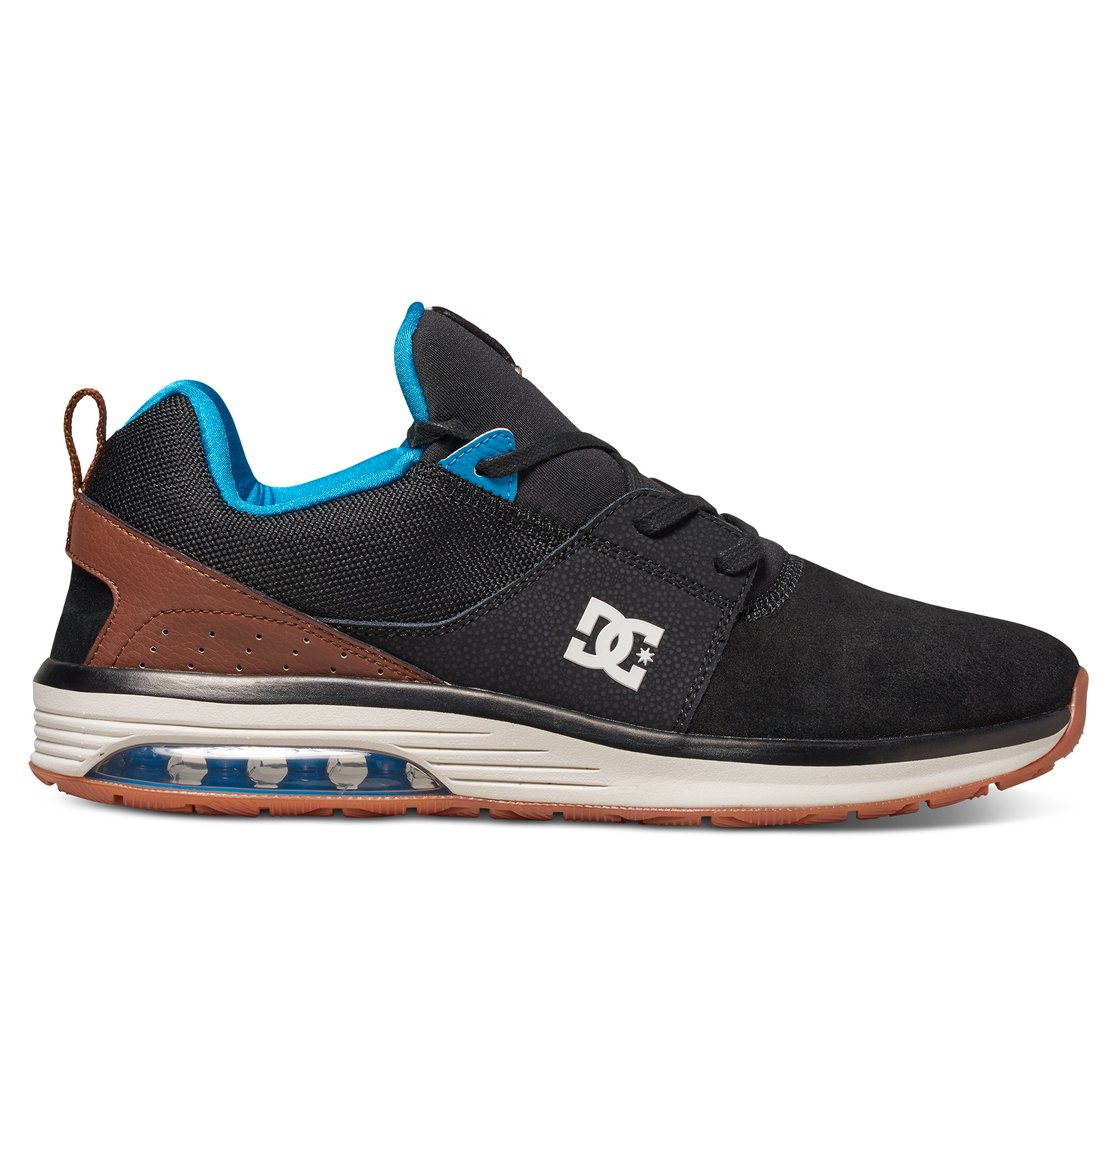 Chaussures de tennis Dc Shoes Heathrow